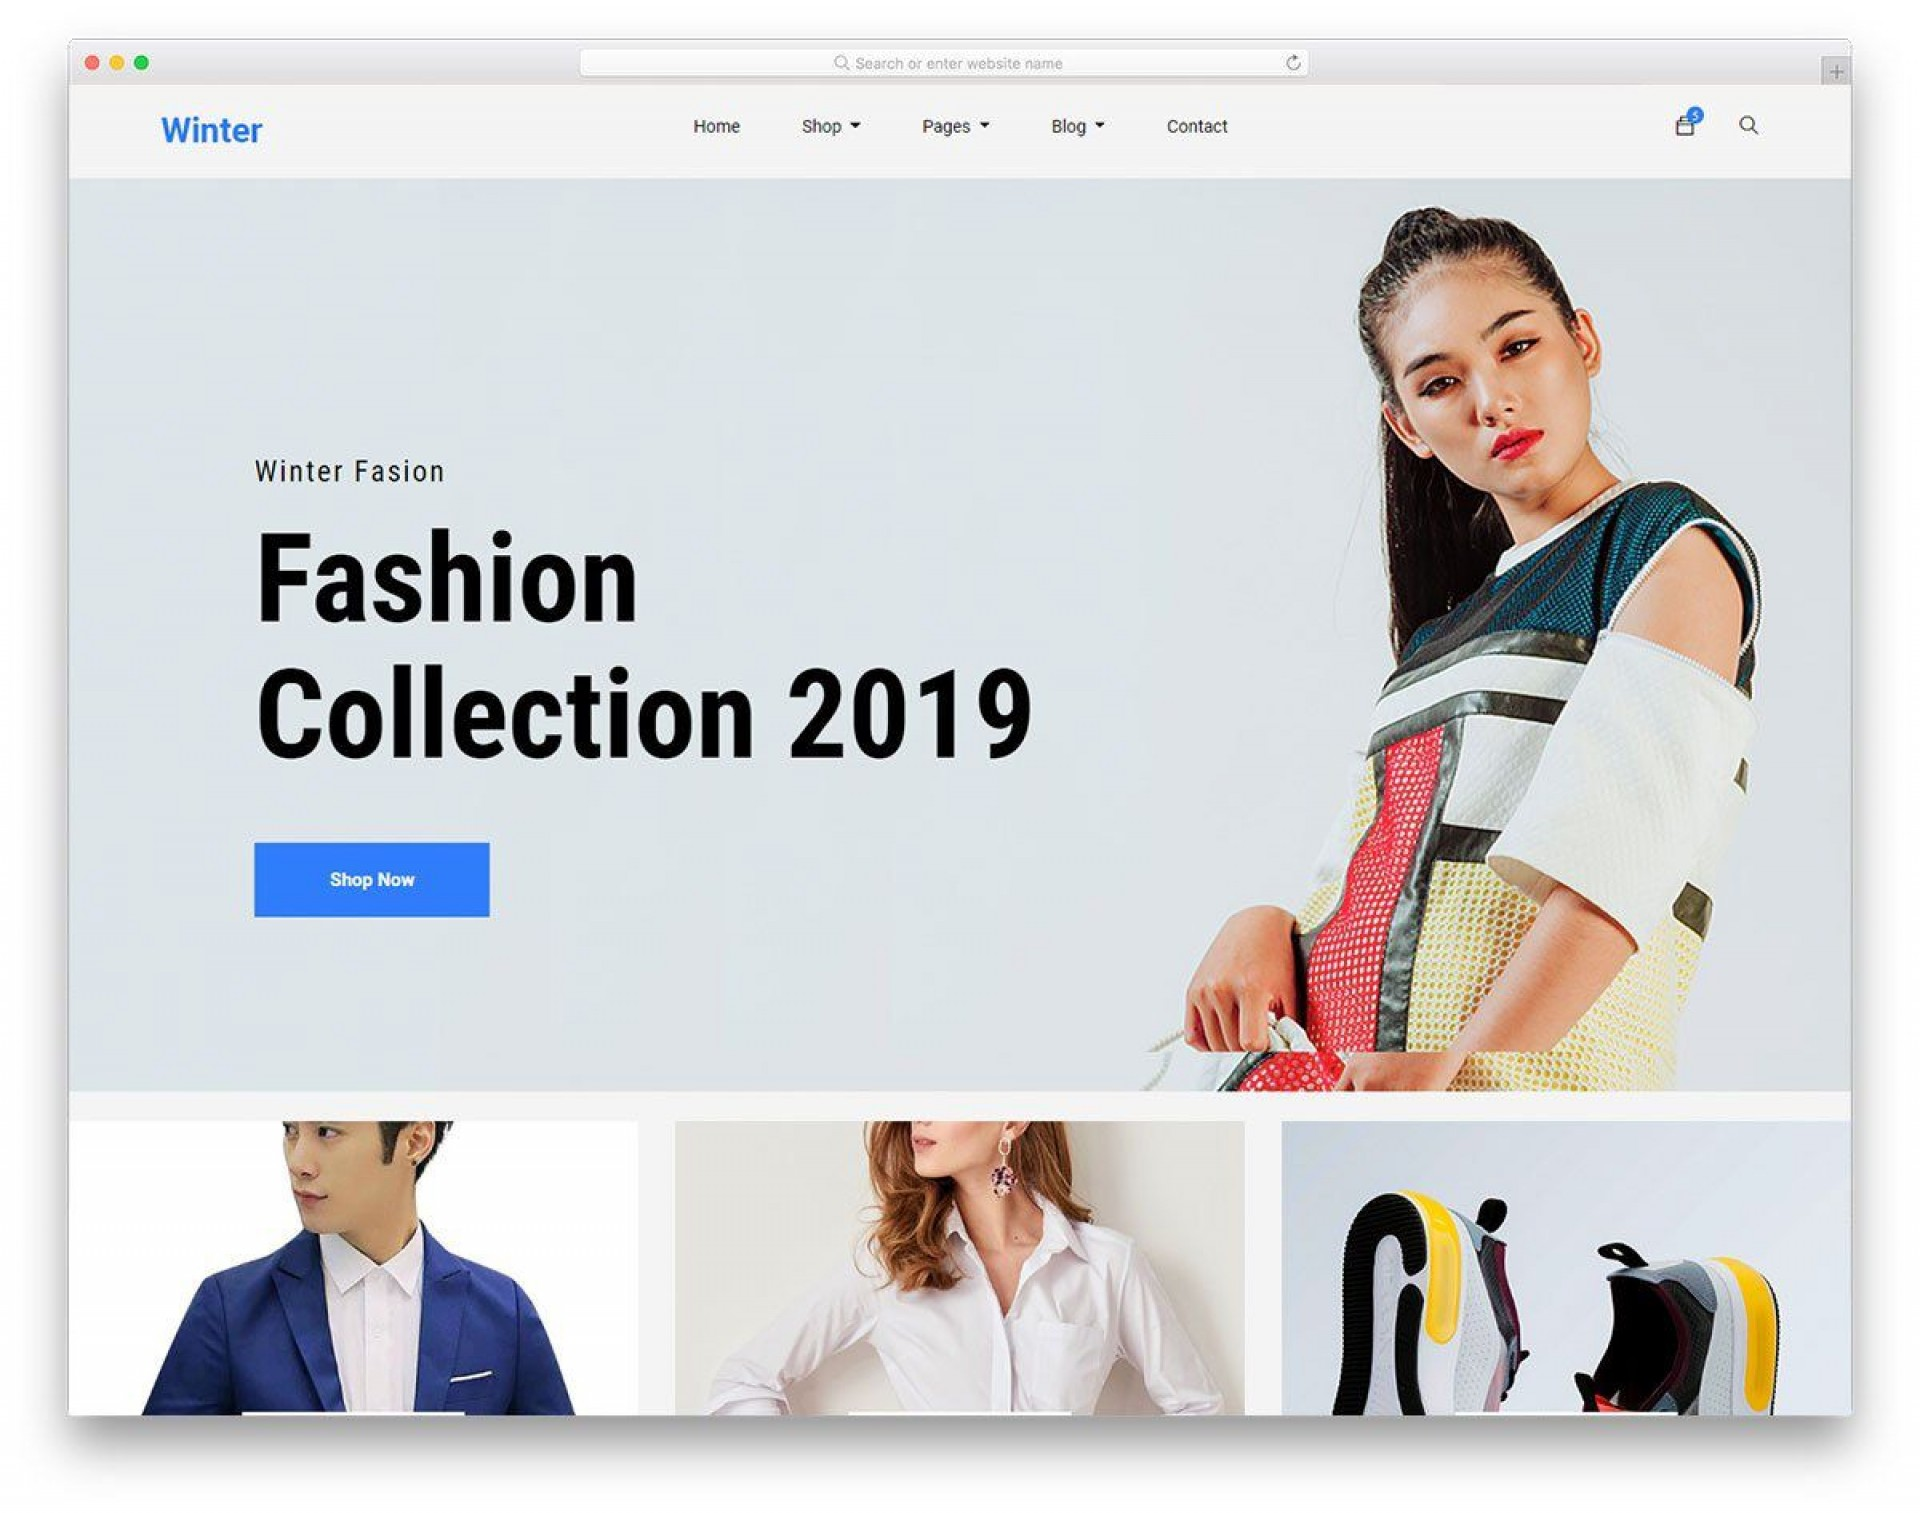 007 Awesome Free Ecommerce Website Template High Def  Templates Github For Blogger Shopping Cart Wordpres1920